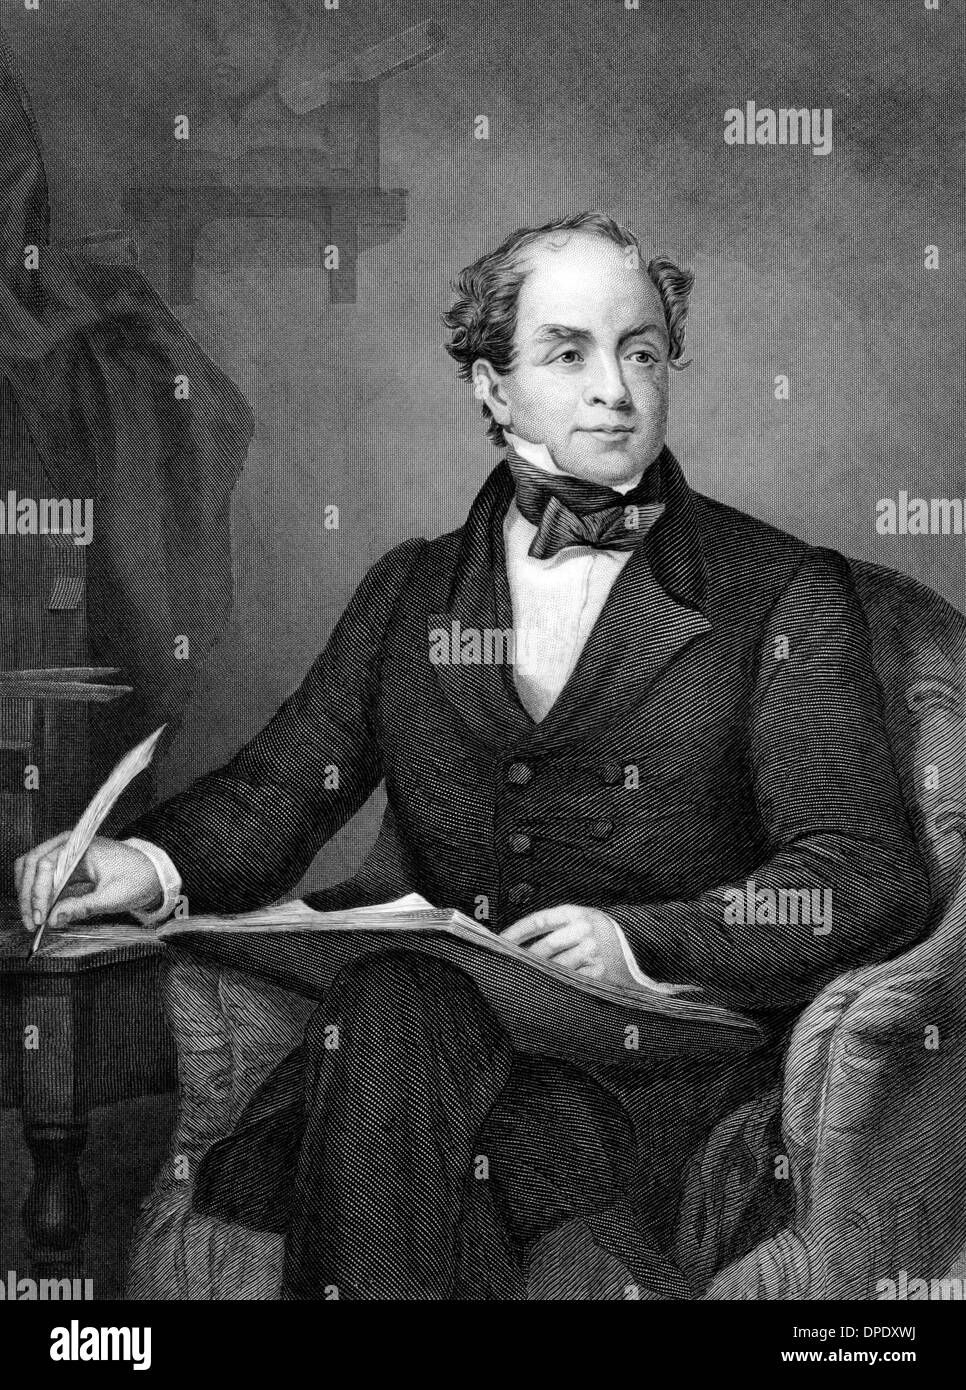 Thomas Moore (1779-1852) on engraving from 1873.  Irish poet, singer, songwriter and entertainer. - Stock Image